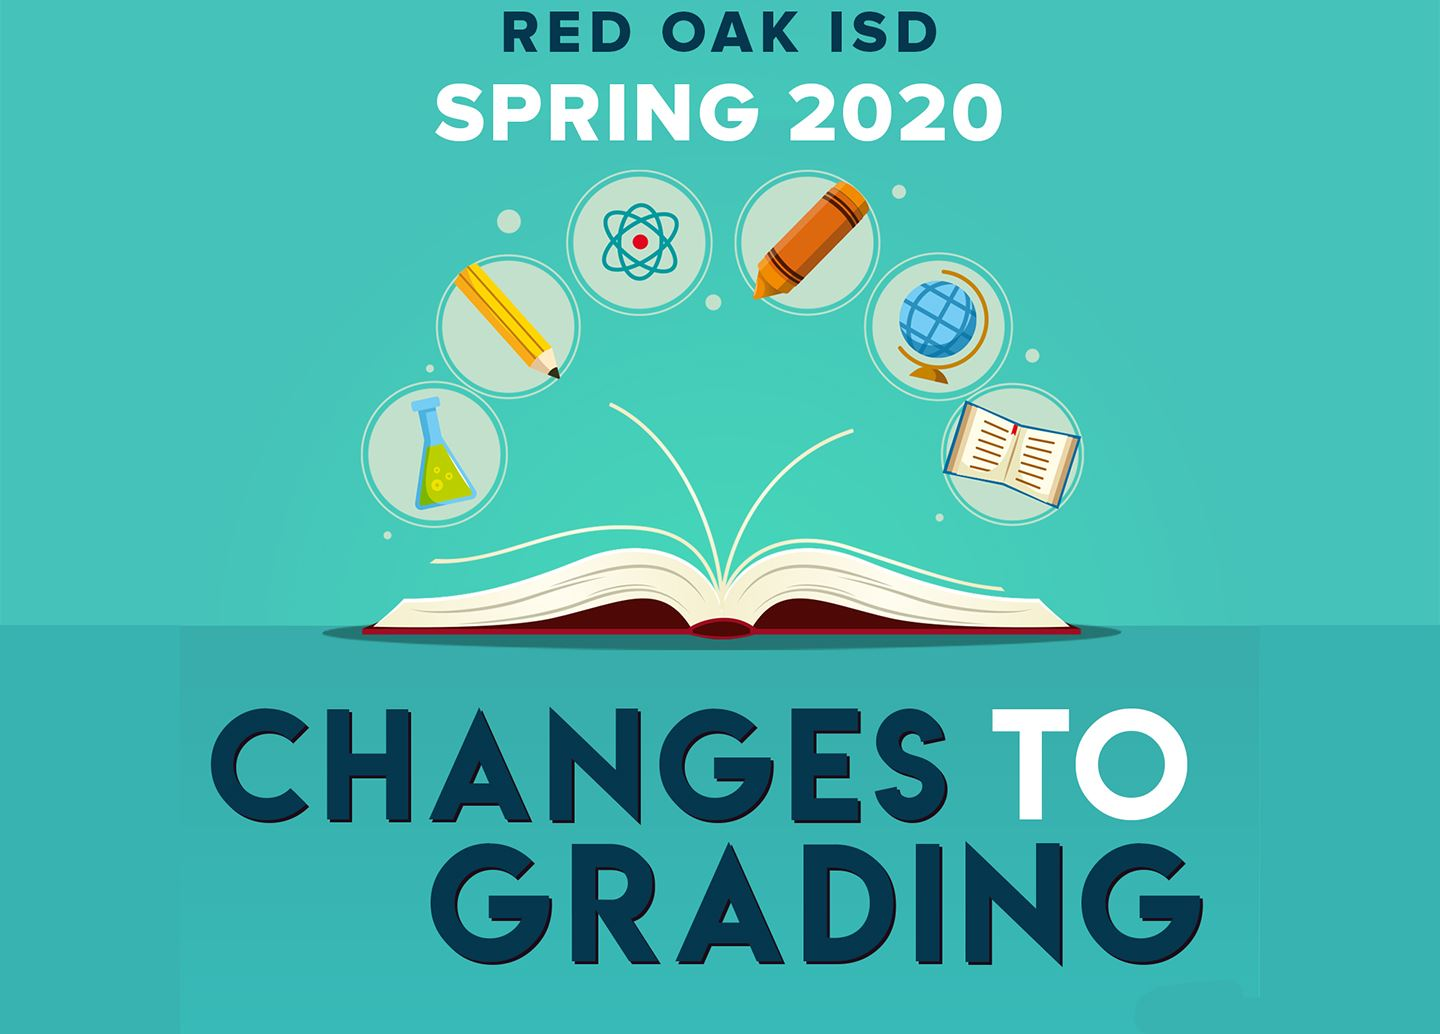 ROISD Spring 2020 Changes to Grading